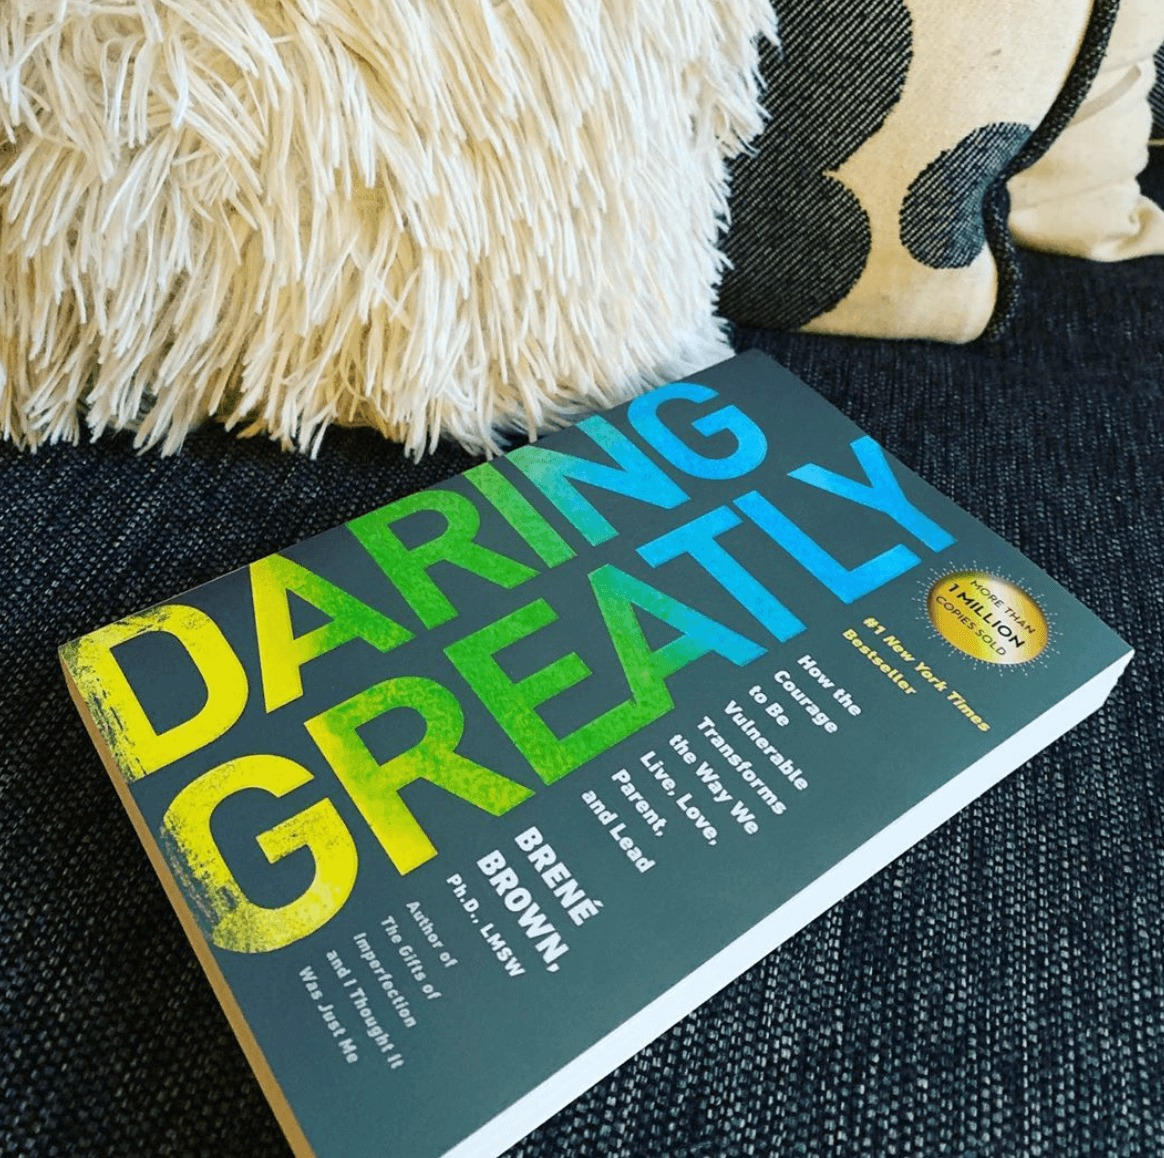 Daring Greatly by Brene Brown.